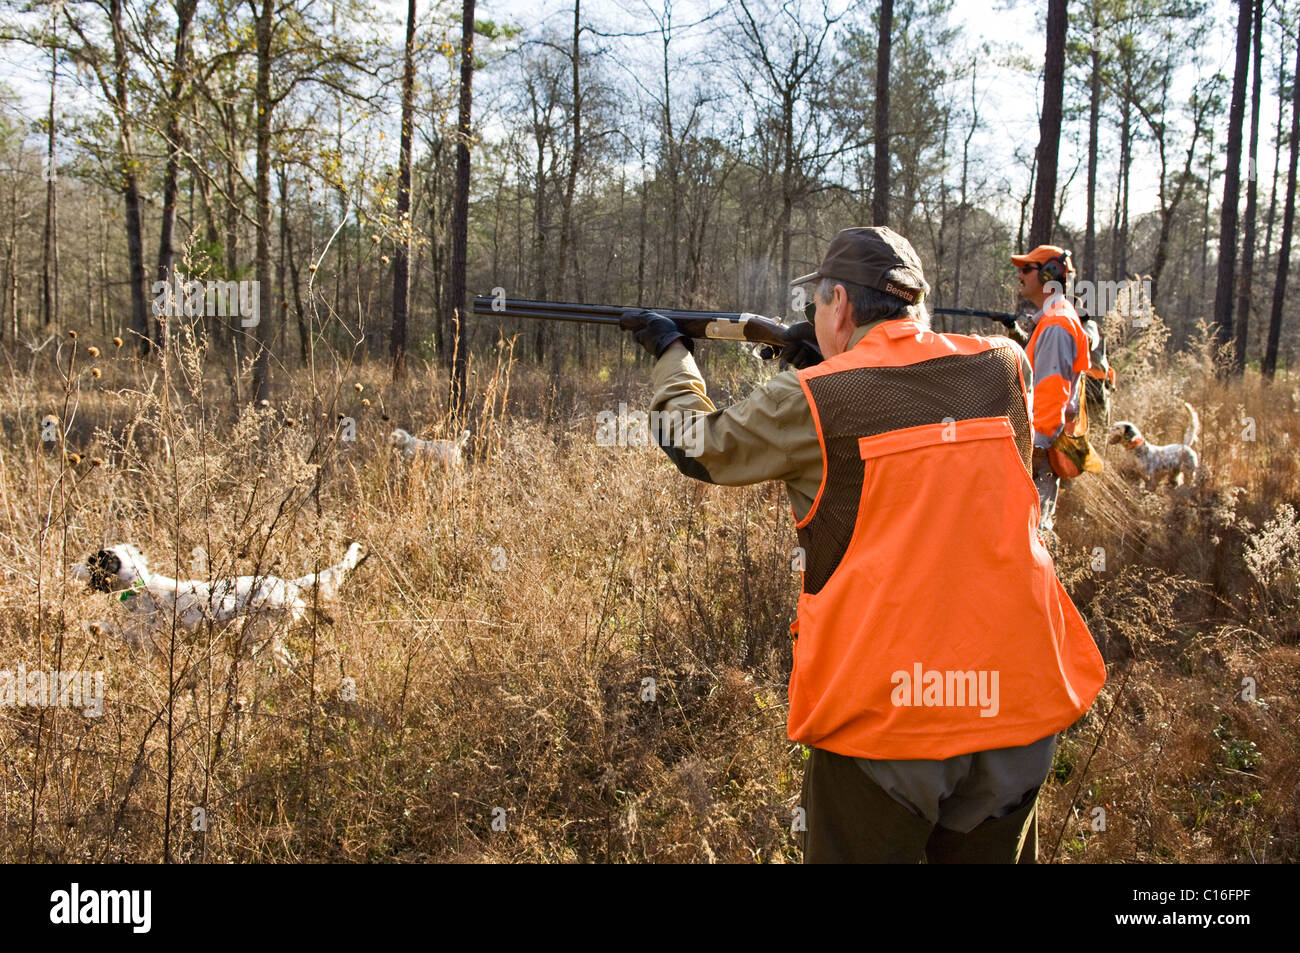 Upland Bird Hunters, Guide and English Setters during a Bobwhite Quail Hunt in the Piney Woods of Dougherty County, - Stock Image